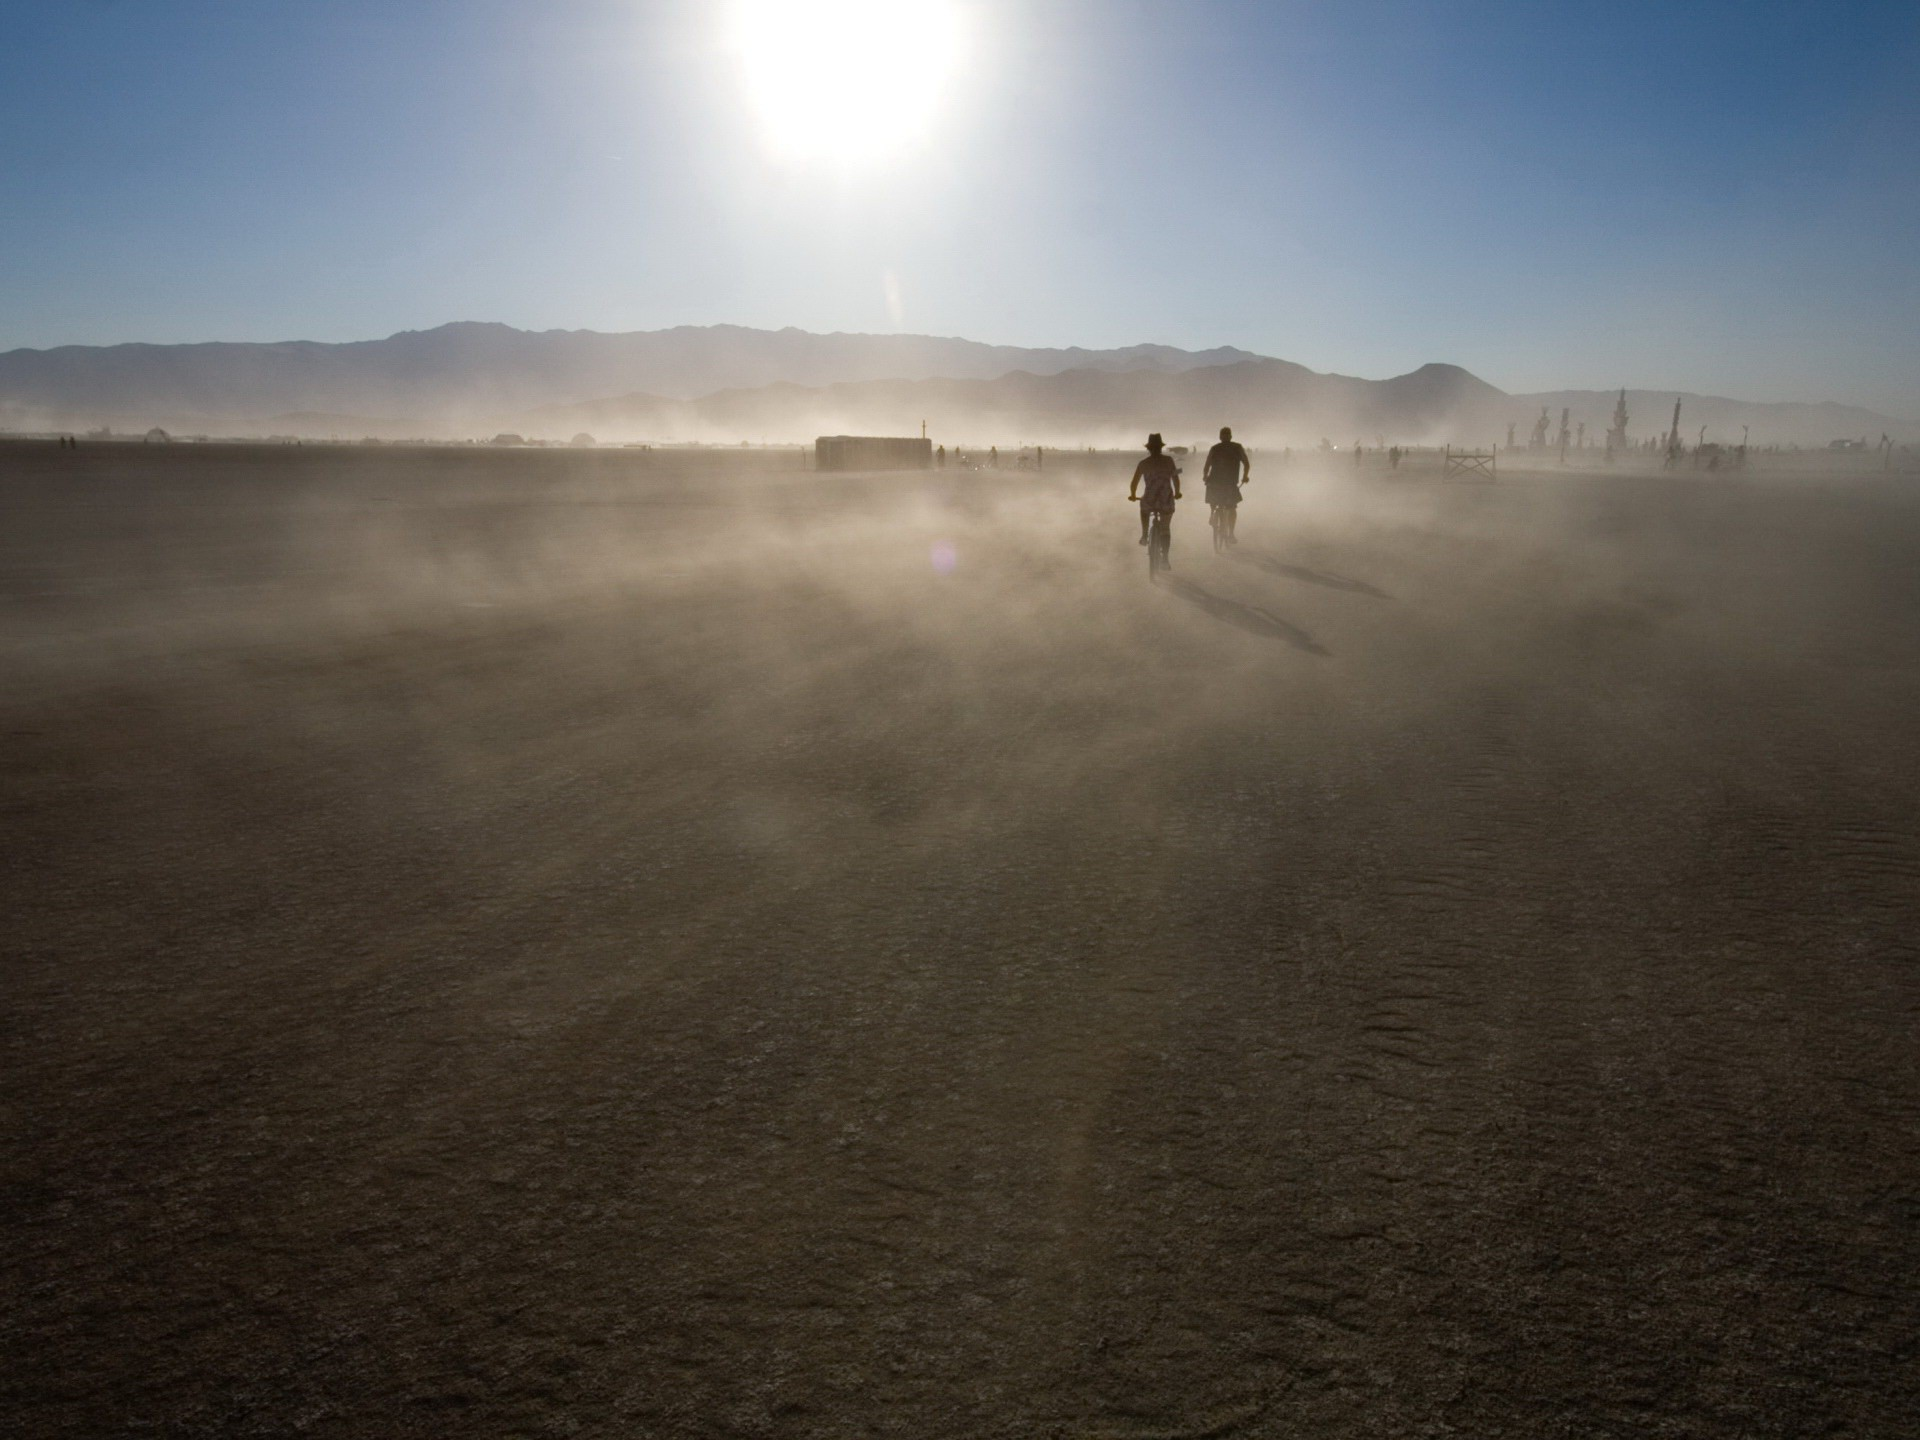 Two cyclists in the desert